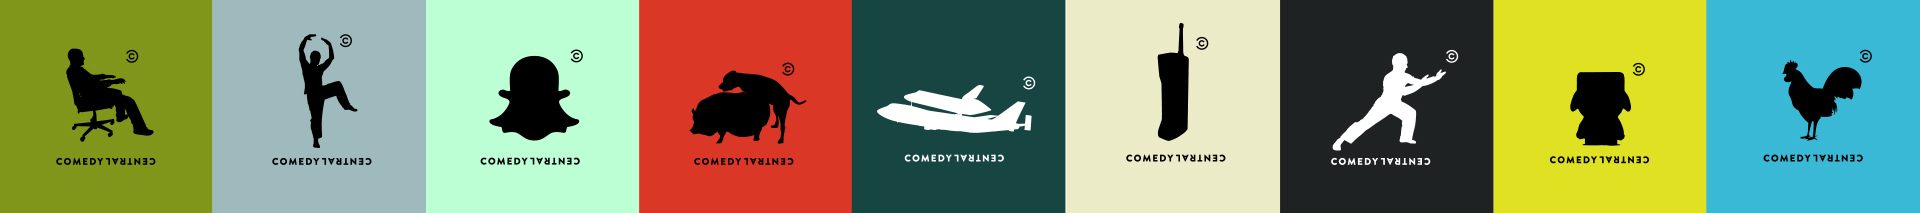 Comedy Central logo silouettes